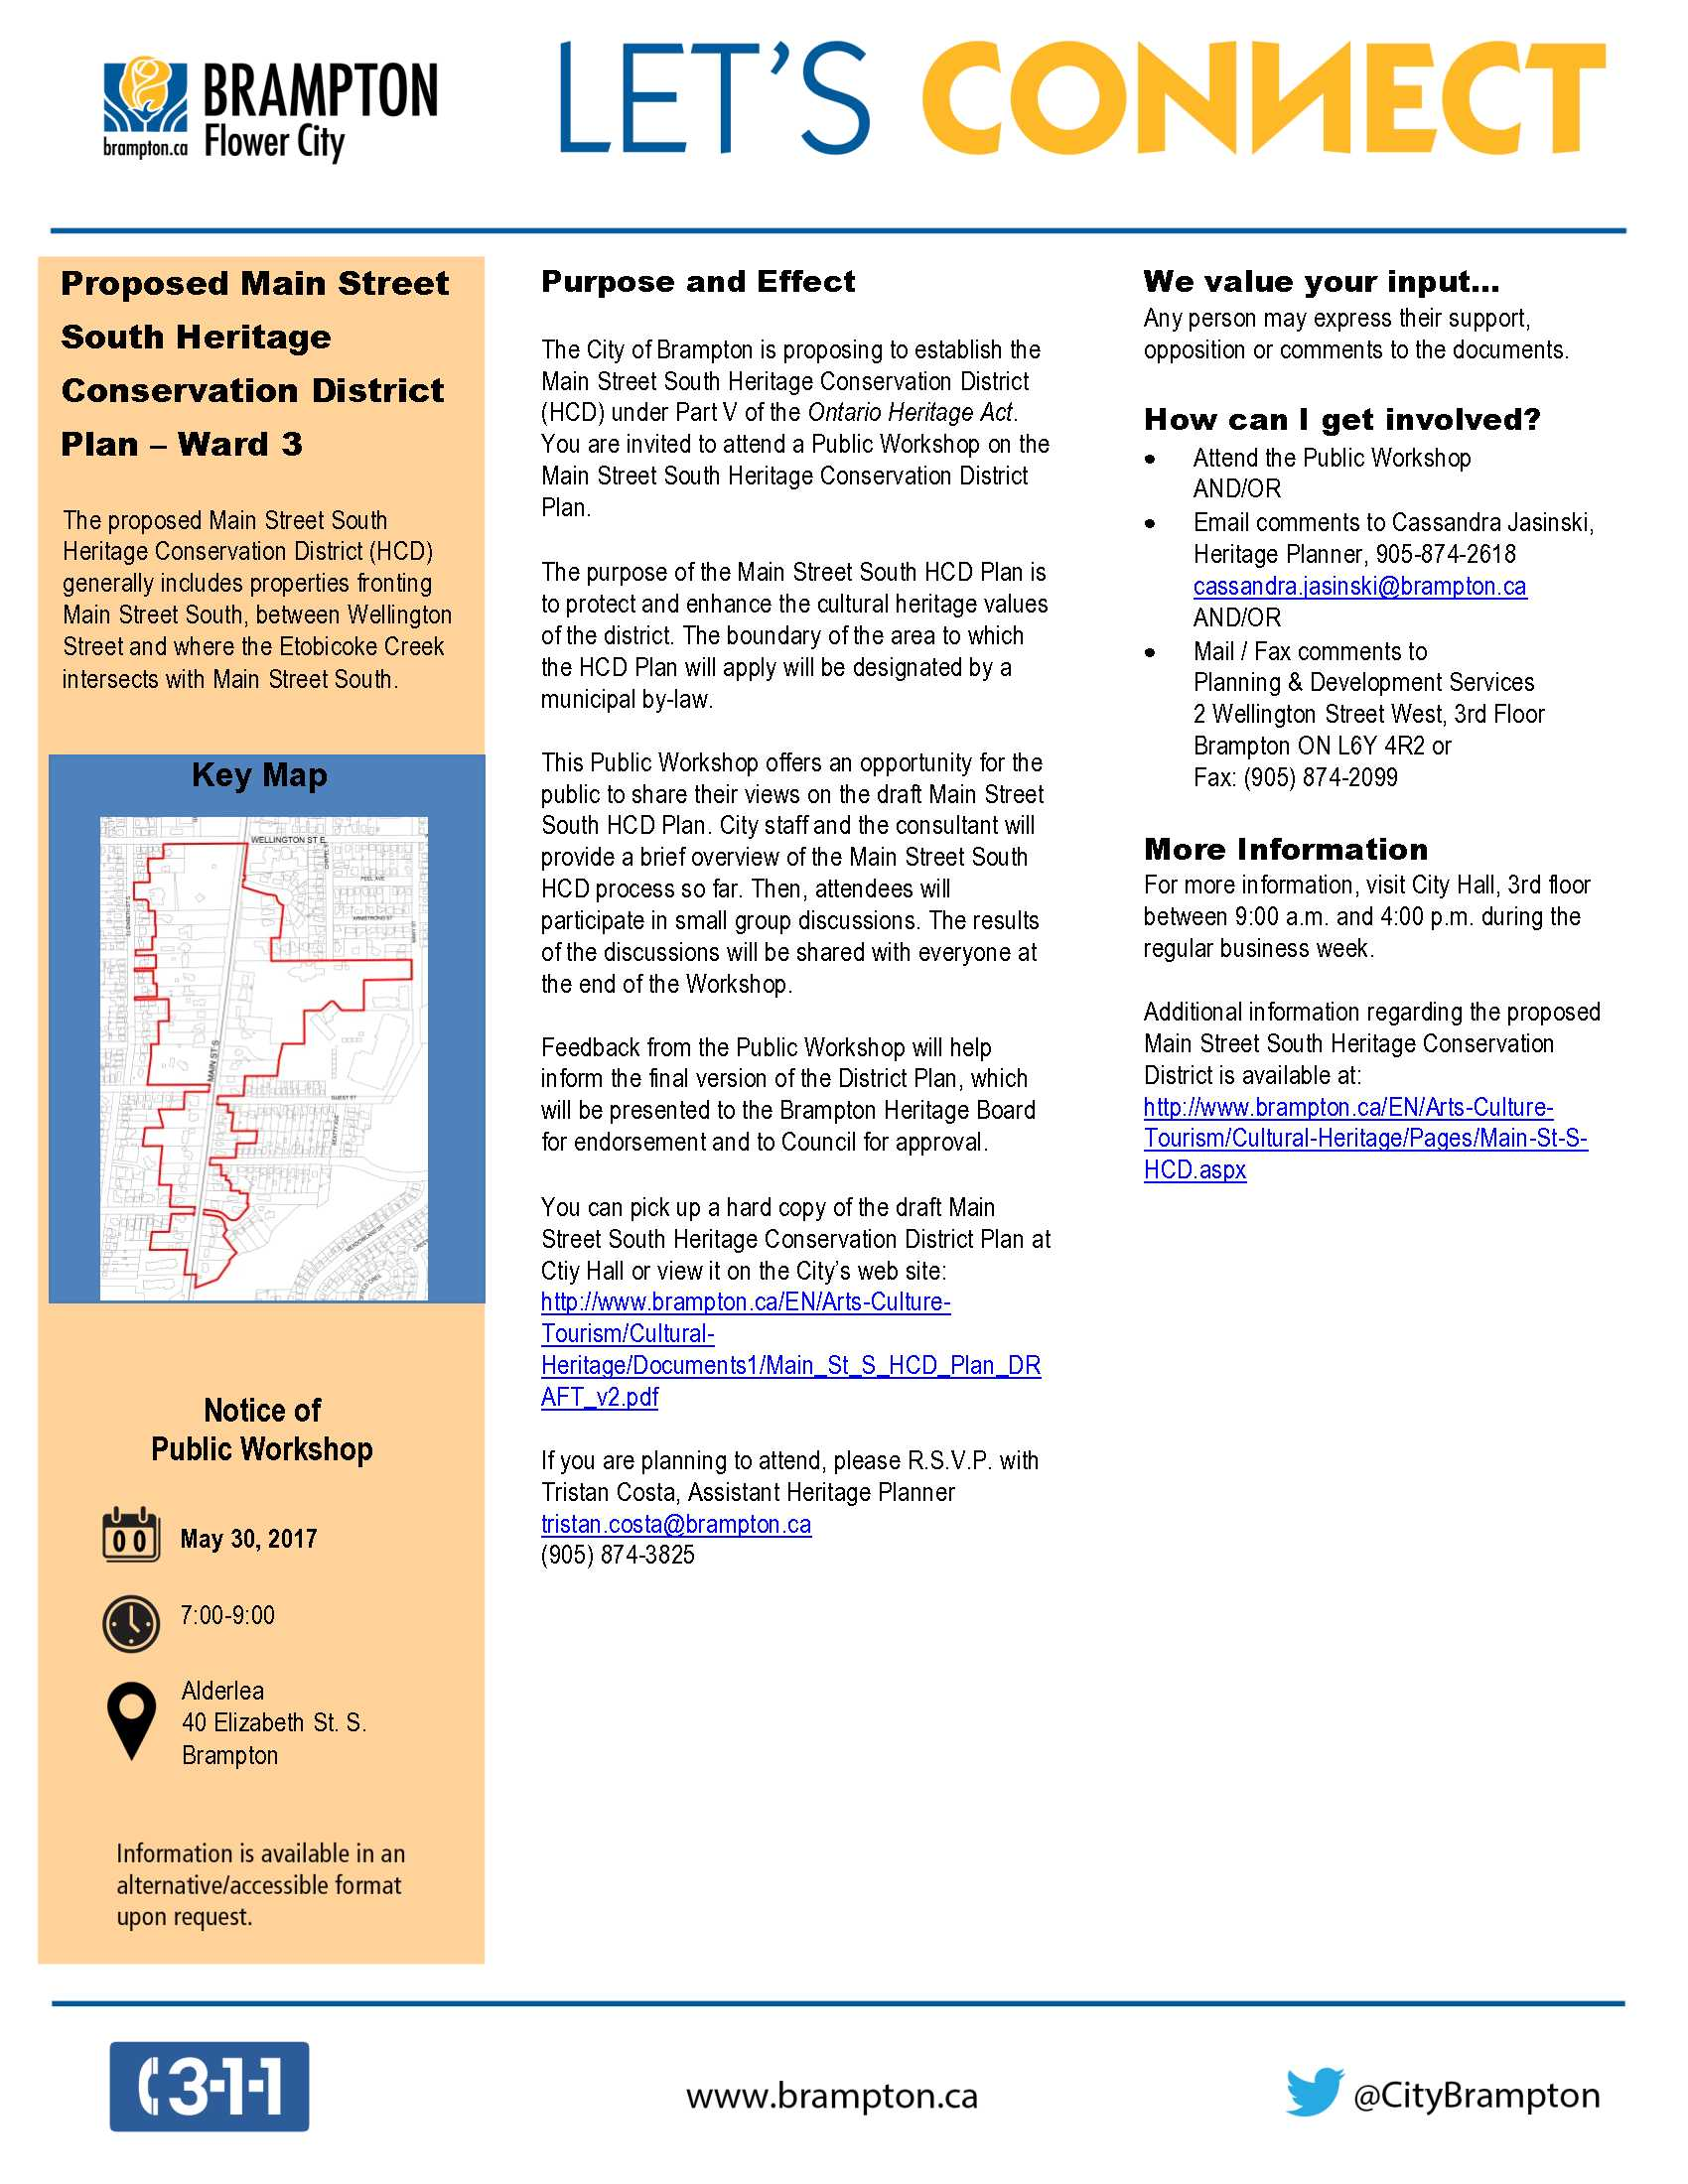 Public Workshop - Proposed Main Street South Heritage Conservation District Plan.jpg